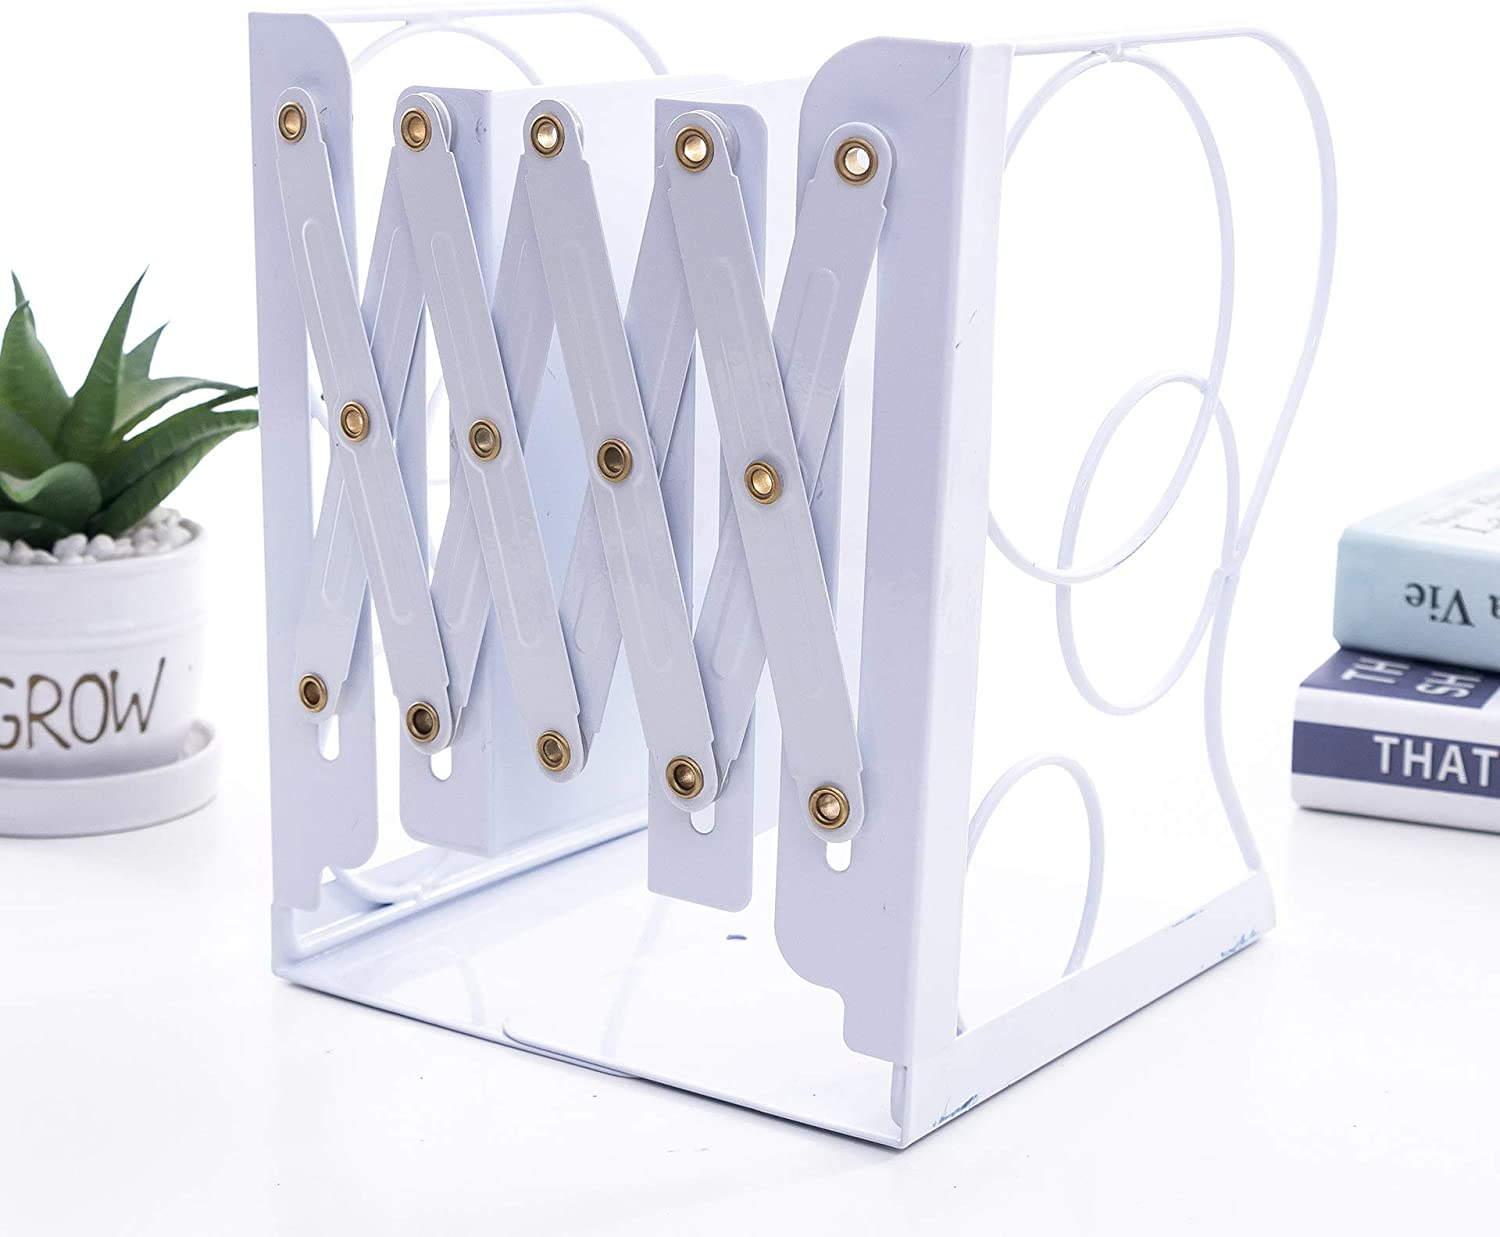 YIHUI Book Ends,Decorative Adjustable Book Ends for Shelves Heavy Books,Nonslip Book Stander for Desk, Shelf, Office, Stationery Kids Gift (Round White)